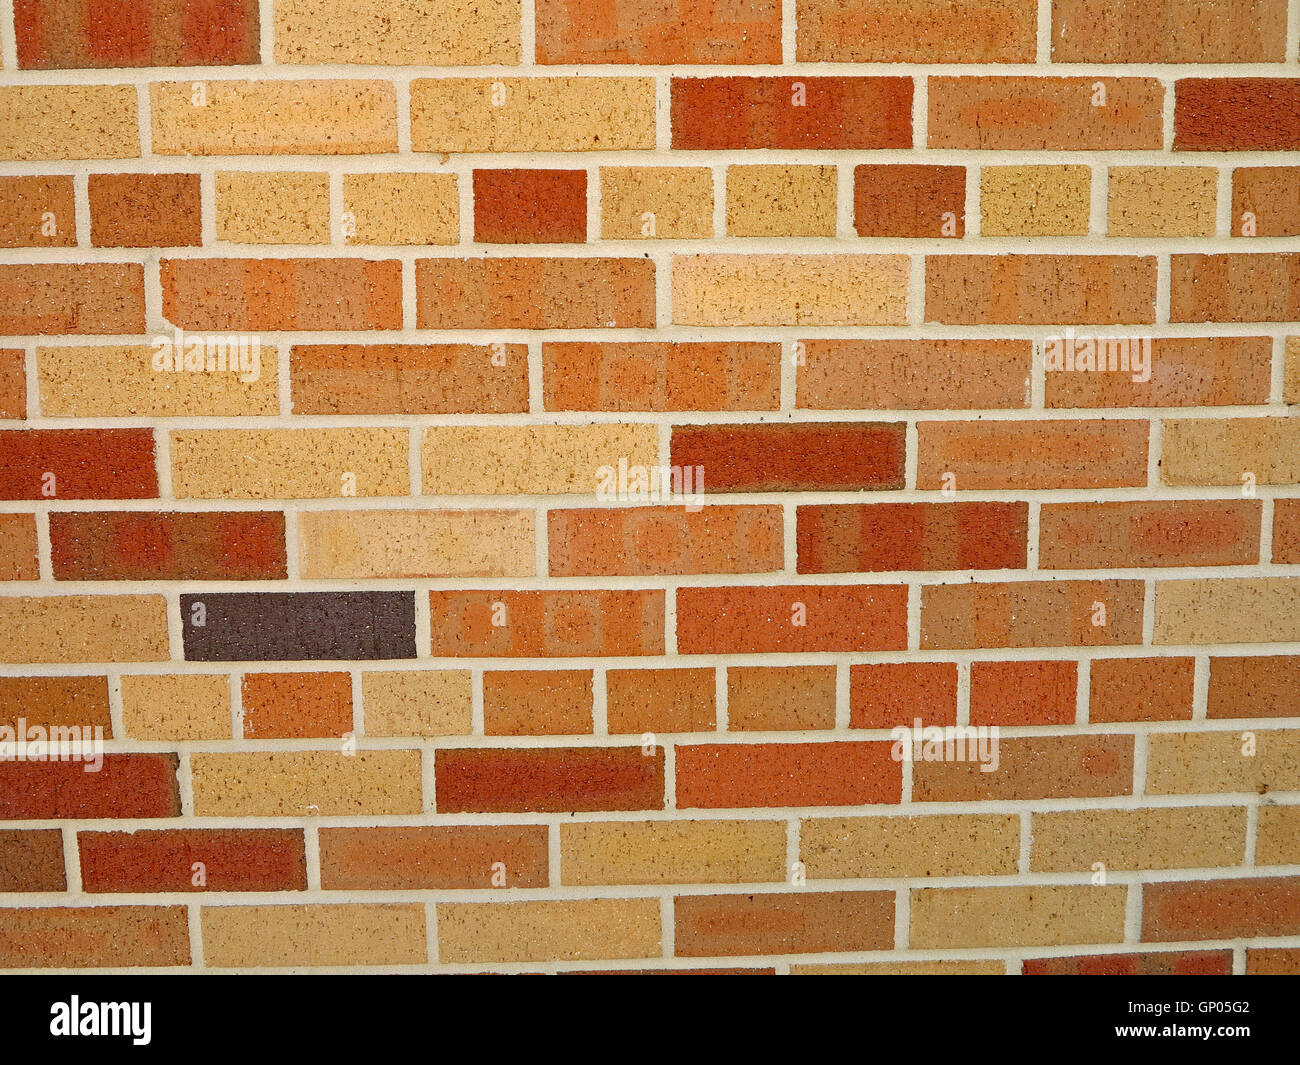 A Brick Wall With Different Color Bricks Stock Photo